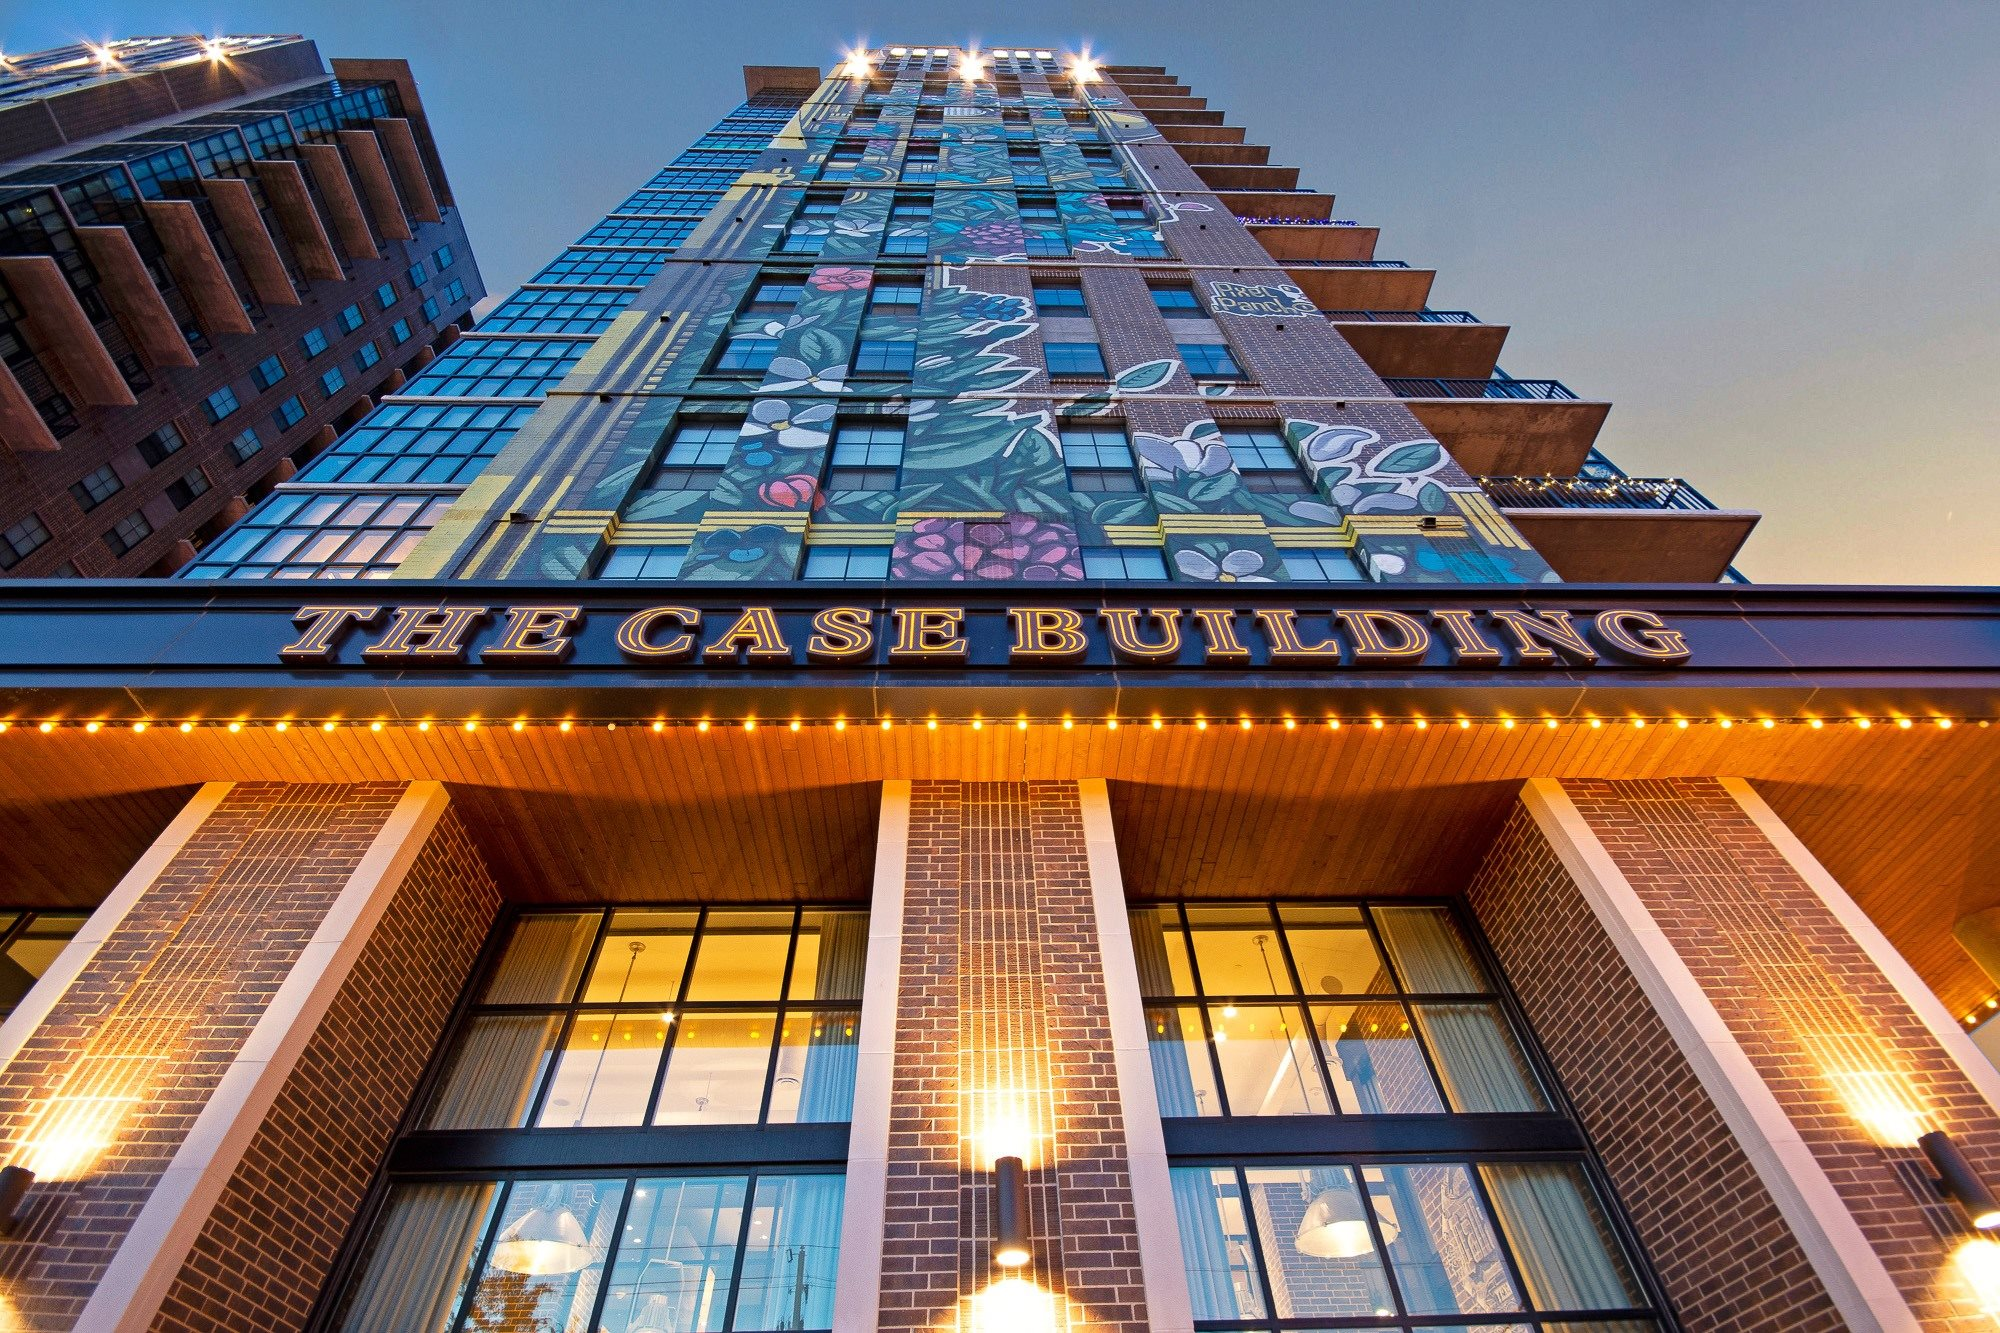 Outer Appearance of Building at The Case Building, Dallas